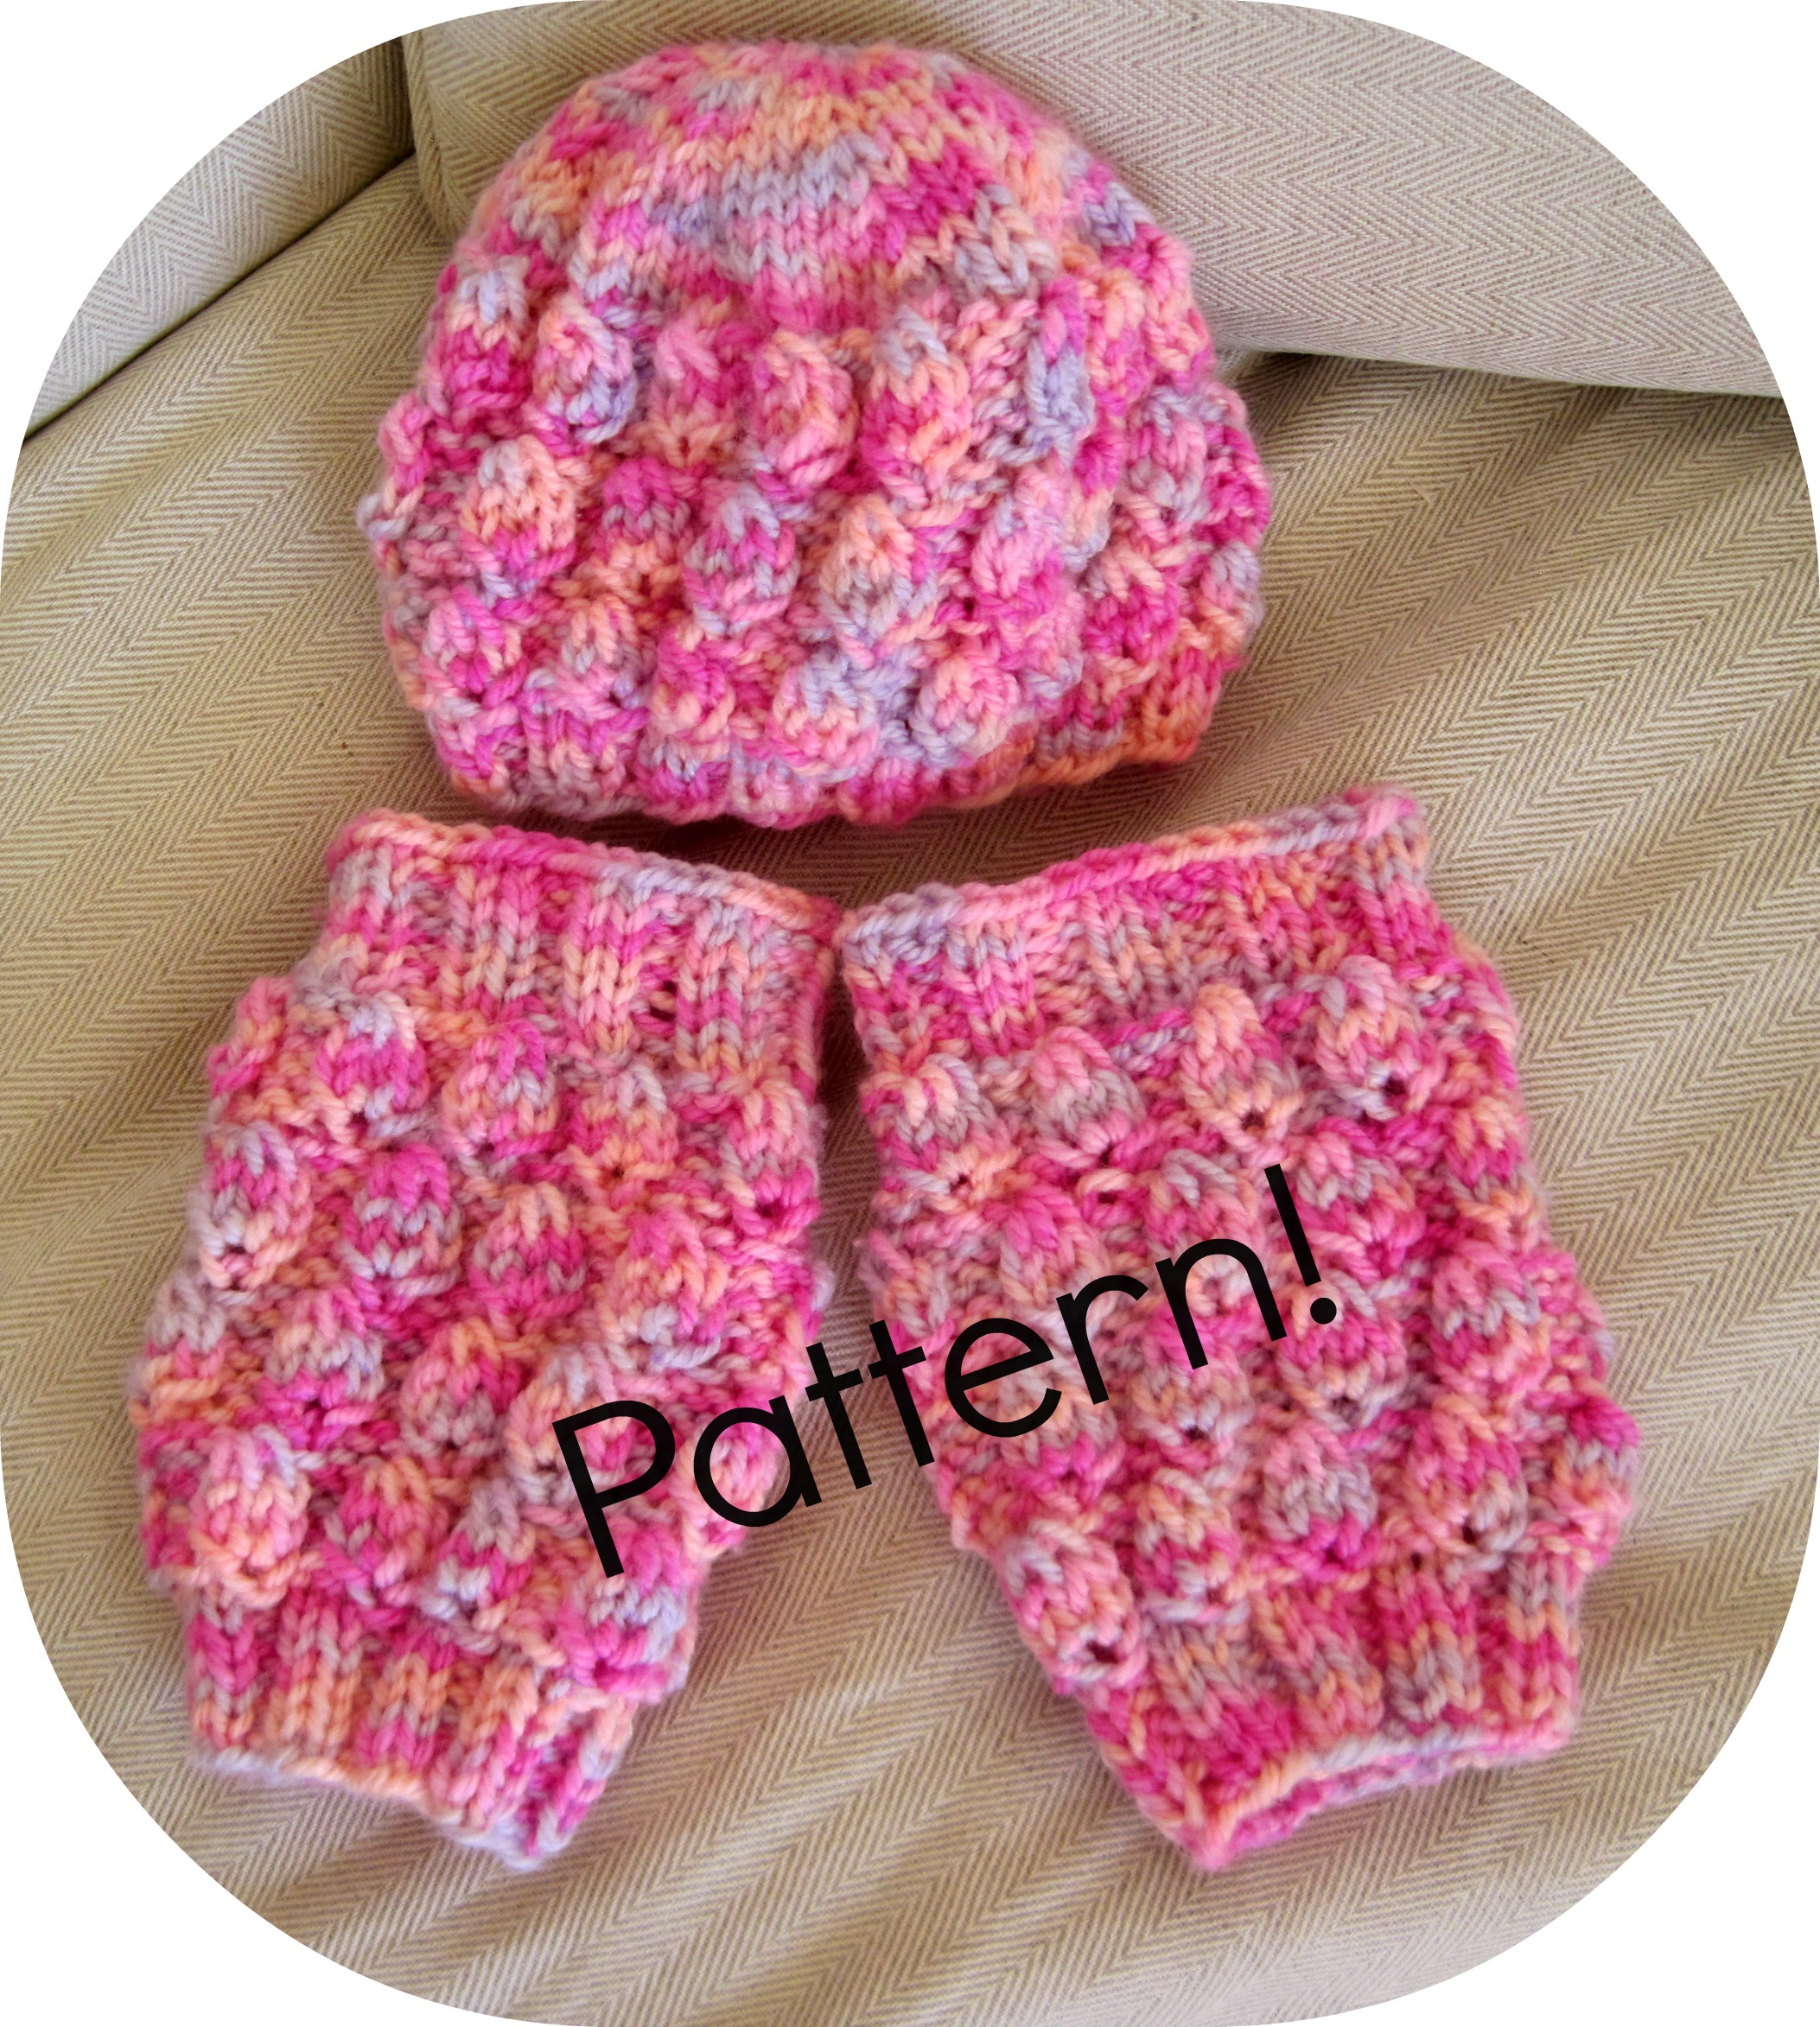 Knitting Baby Set Pattern, Hat And Leg Warmers - Knitting ...